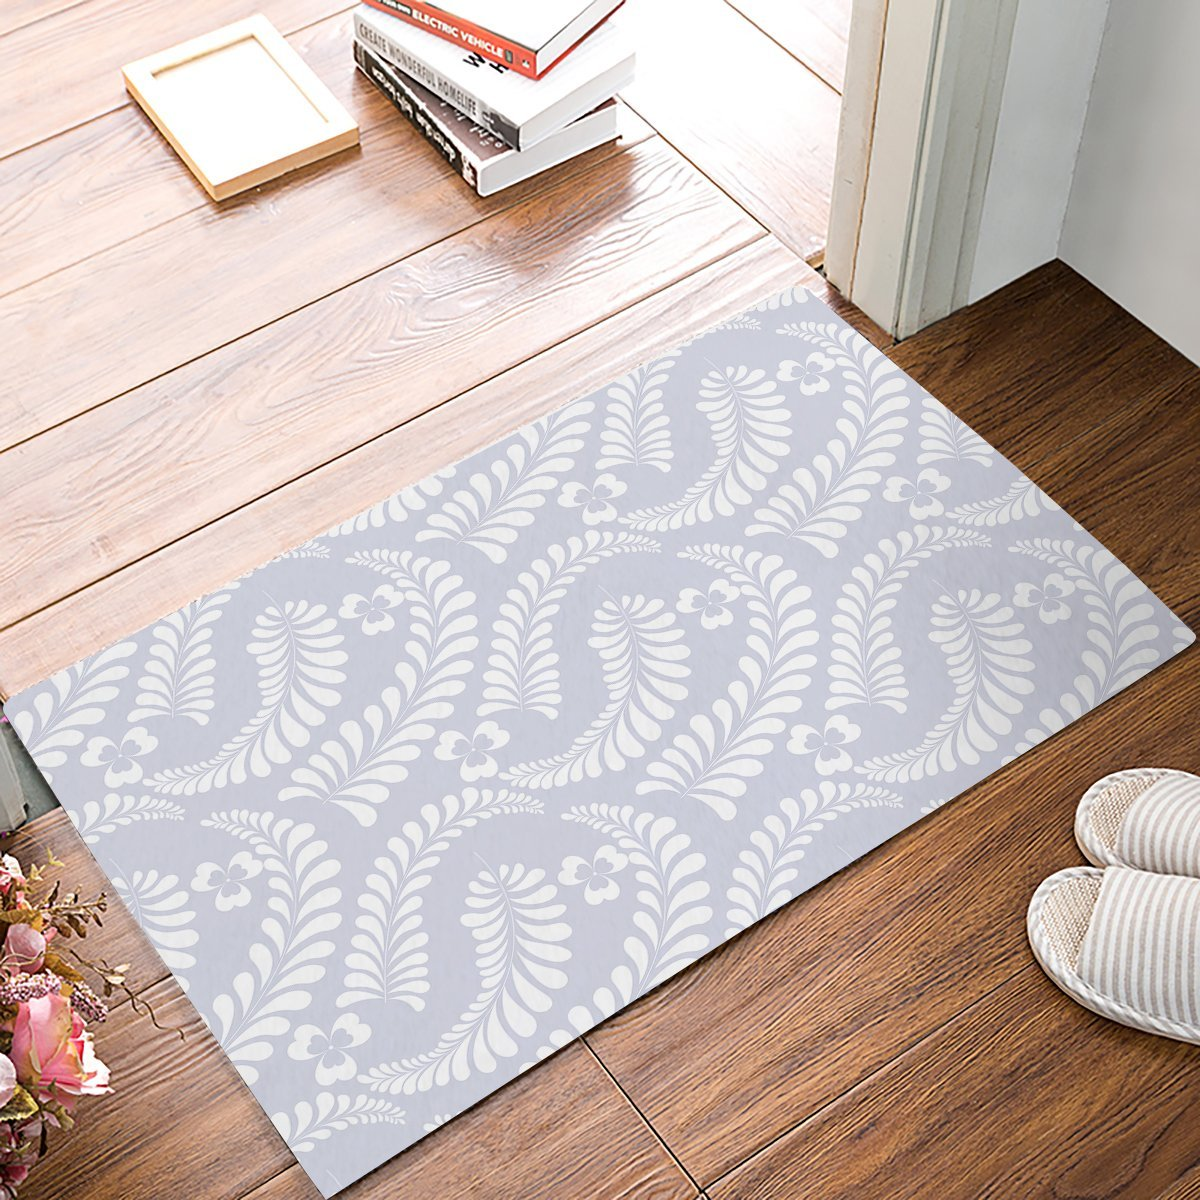 Light Purple and White Plant Pattern Clover Bathroom Doormat Carpet Indoor Mat Anti Skid Shag Shaggy Bath Shower Mats